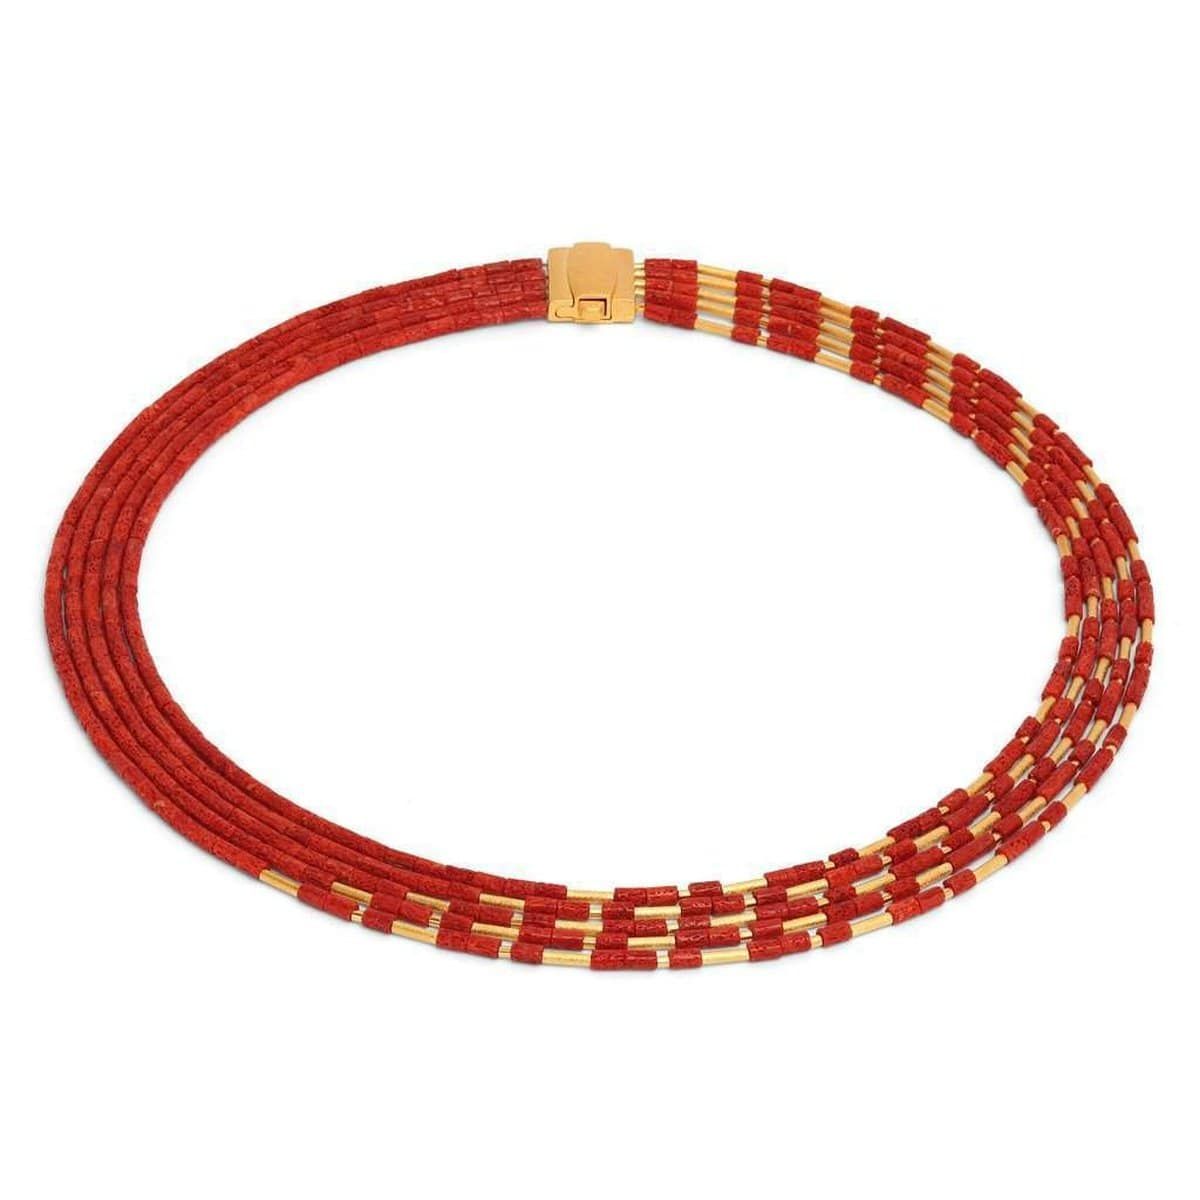 Cliopetra Red Coral Necklace - 84014296-Bernd Wolf-Renee Taylor Gallery